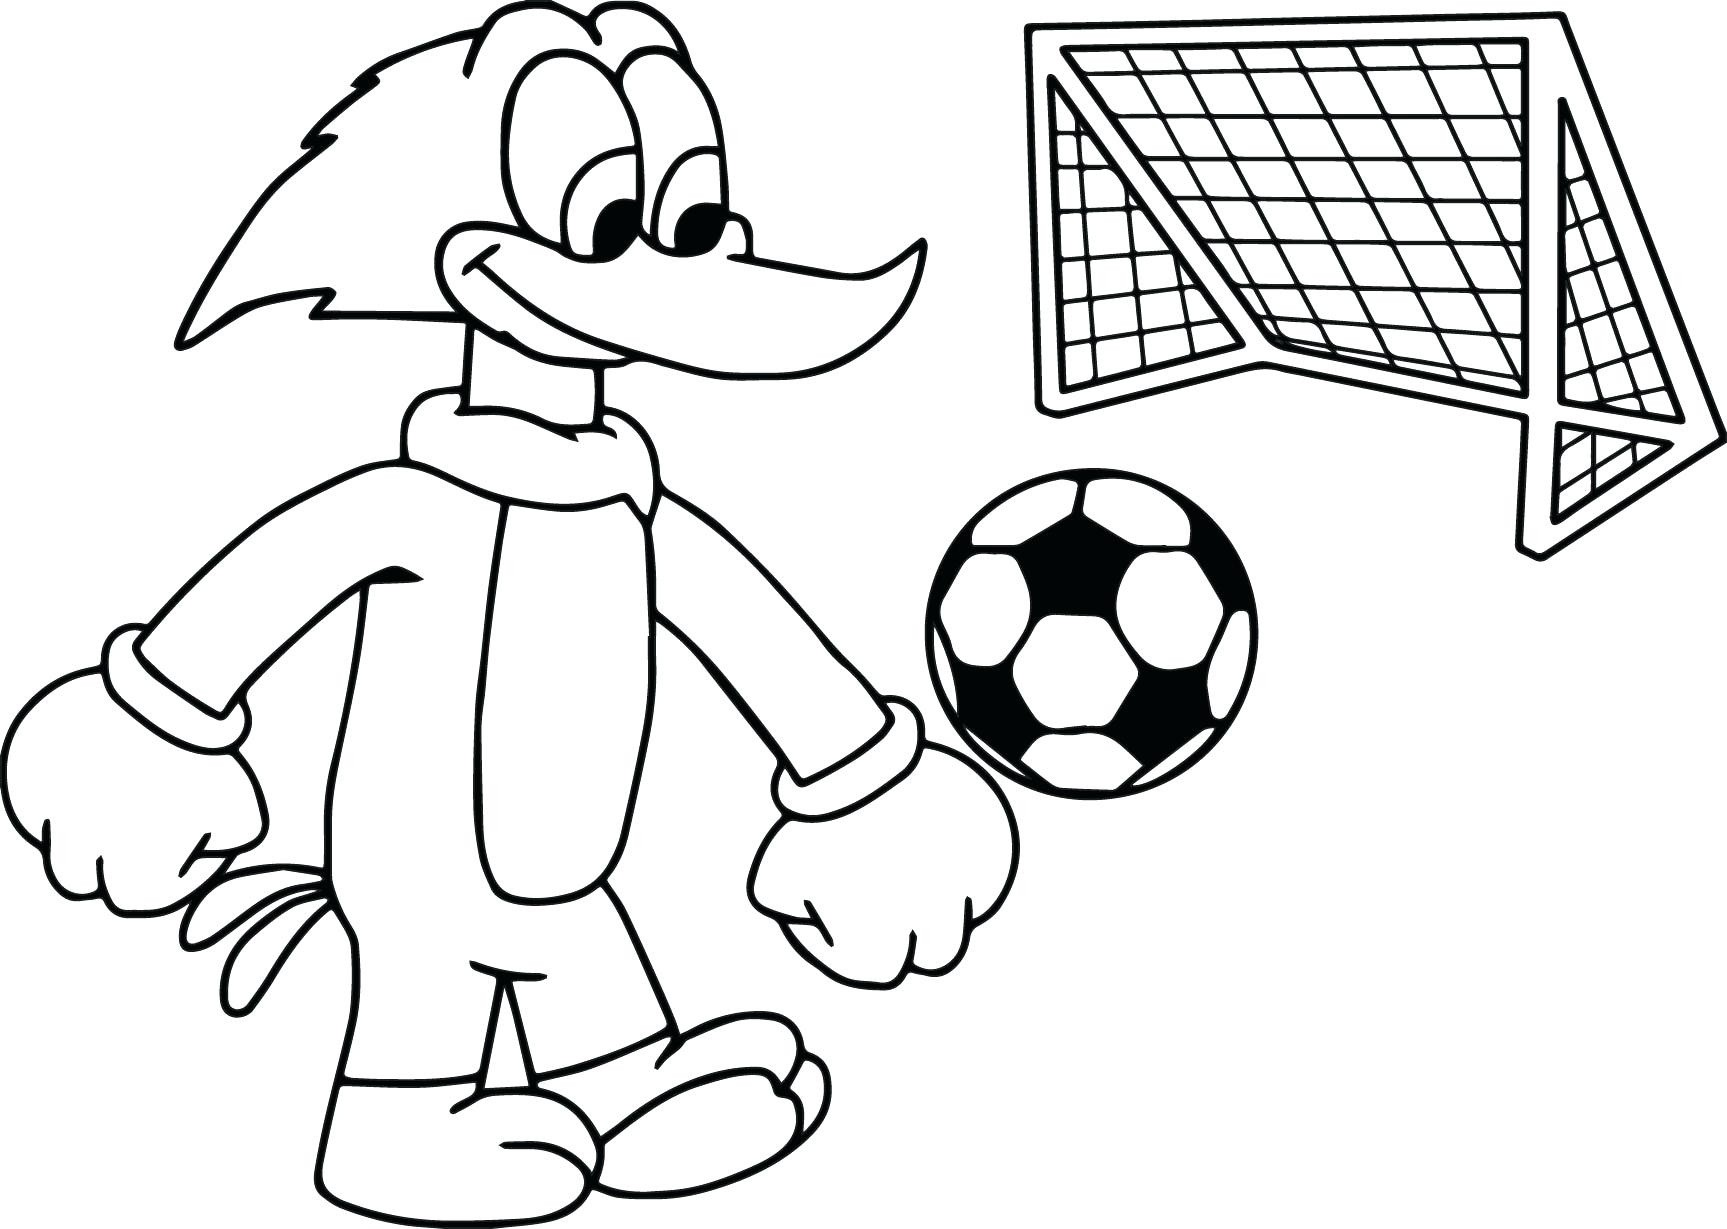 1727x1229 Soccer Coloring Pages Beautiful Kids Playing Soccer Coloring Page